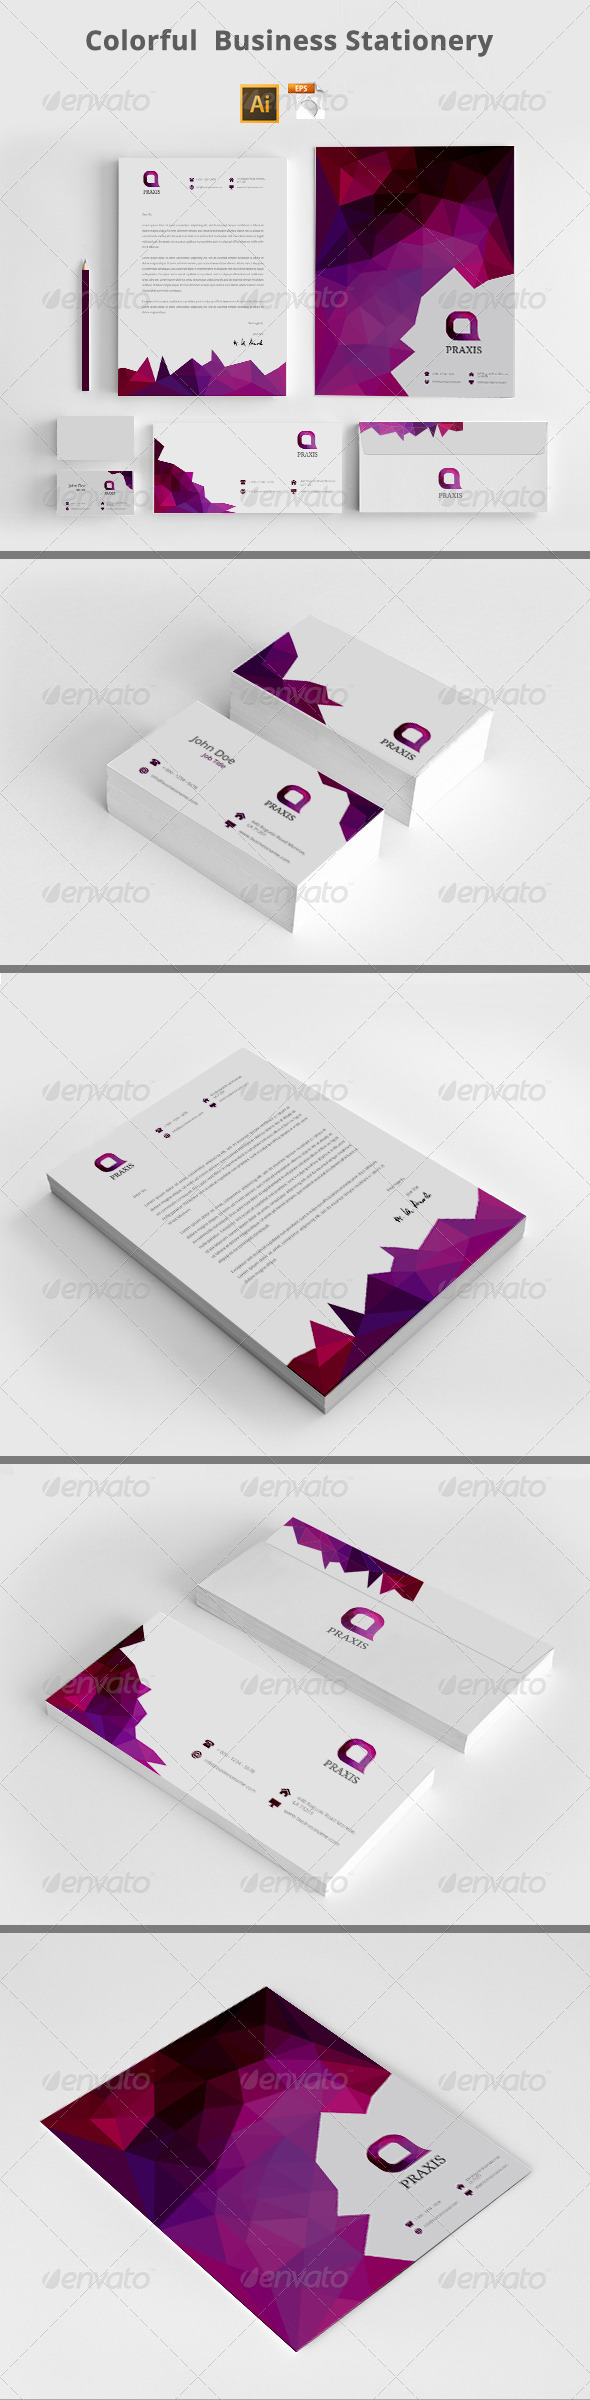 GraphicRiver Colorful Business Stationery 8157216